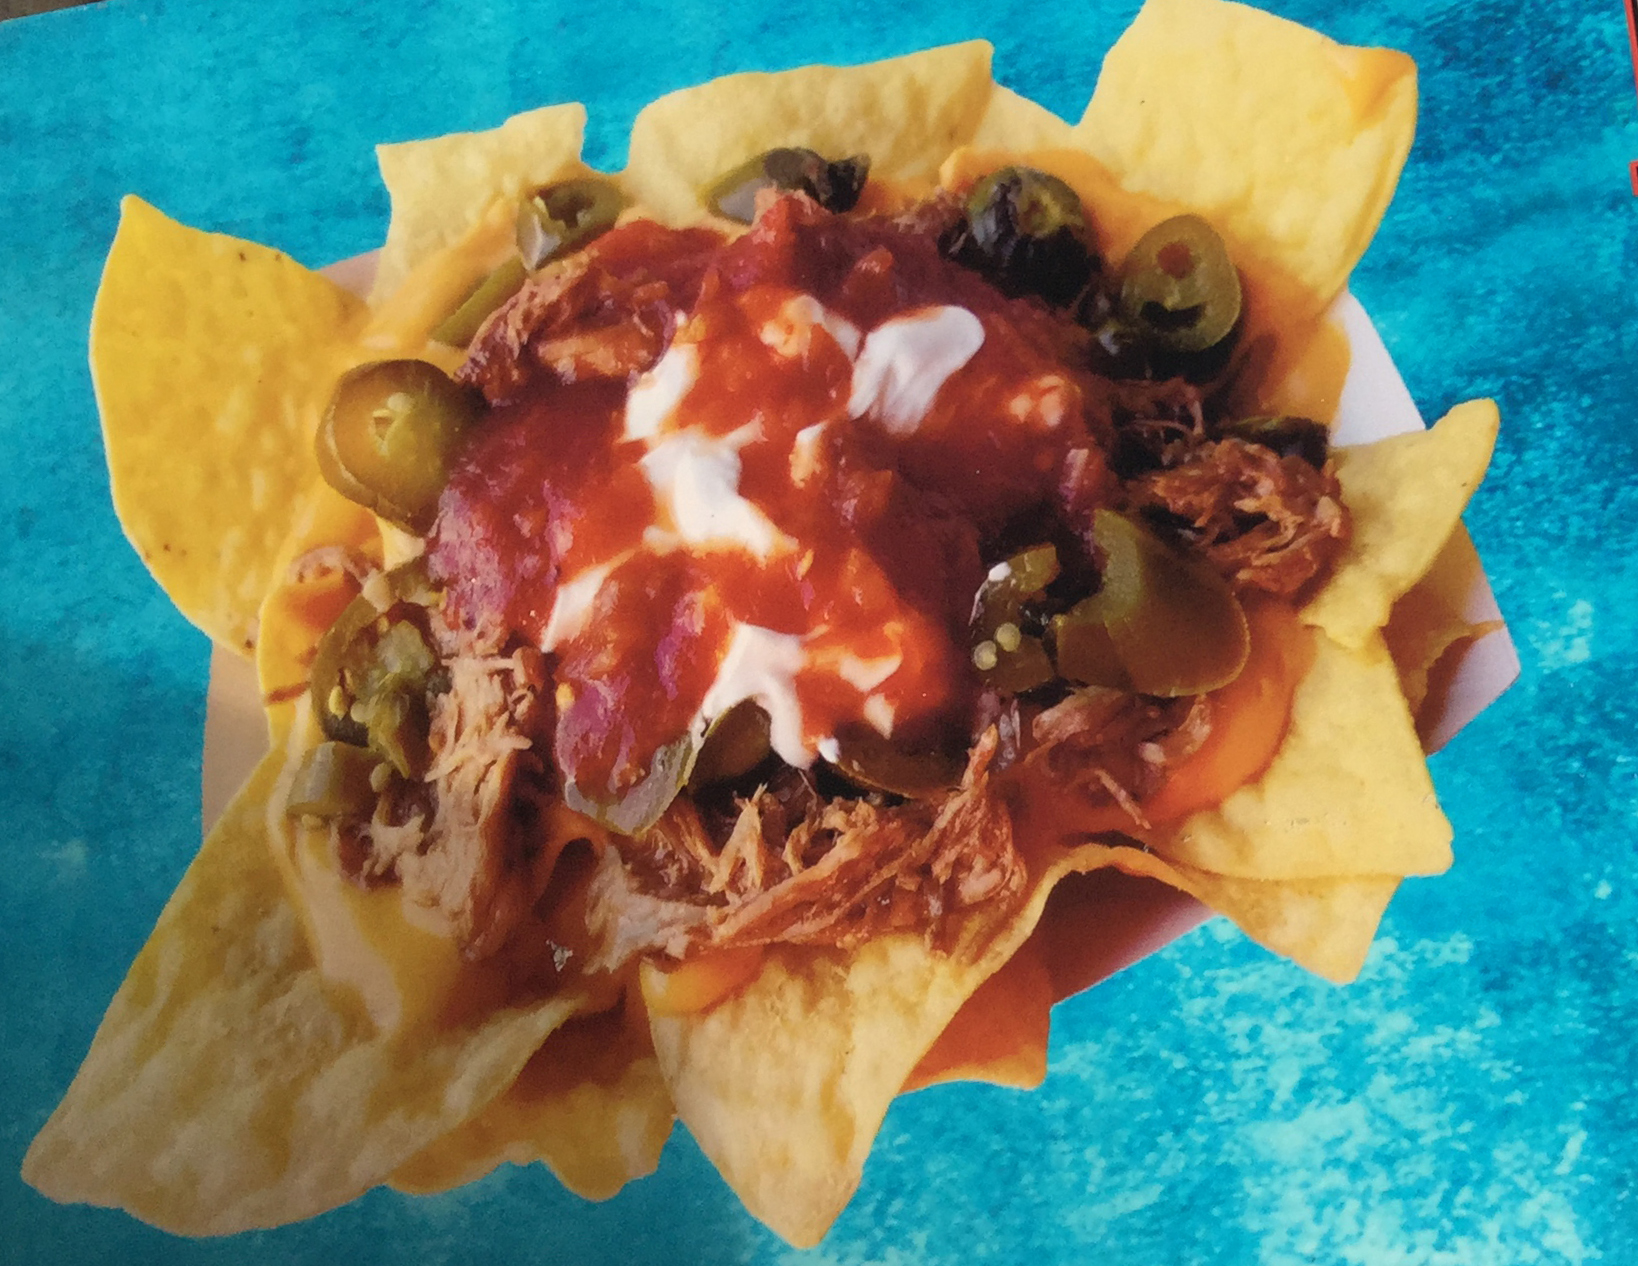 Midstate Cookers - Pulled Pork Nachos